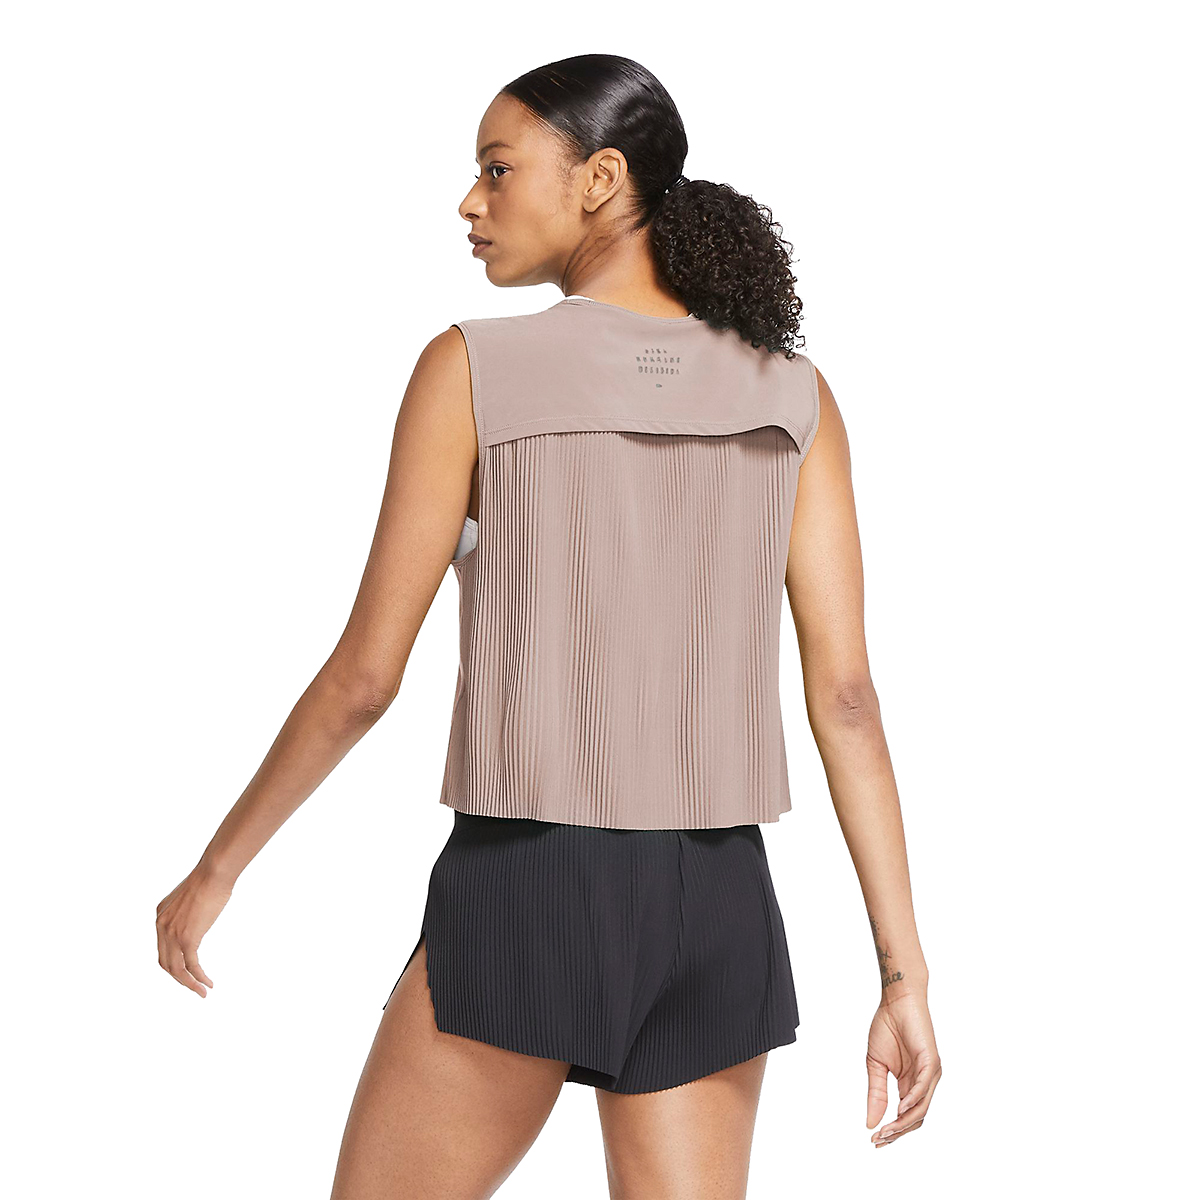 Women's Nike Pleated Run Division Tank - Color: Fossil Stone - Size: XS, Fossil Stone, large, image 2